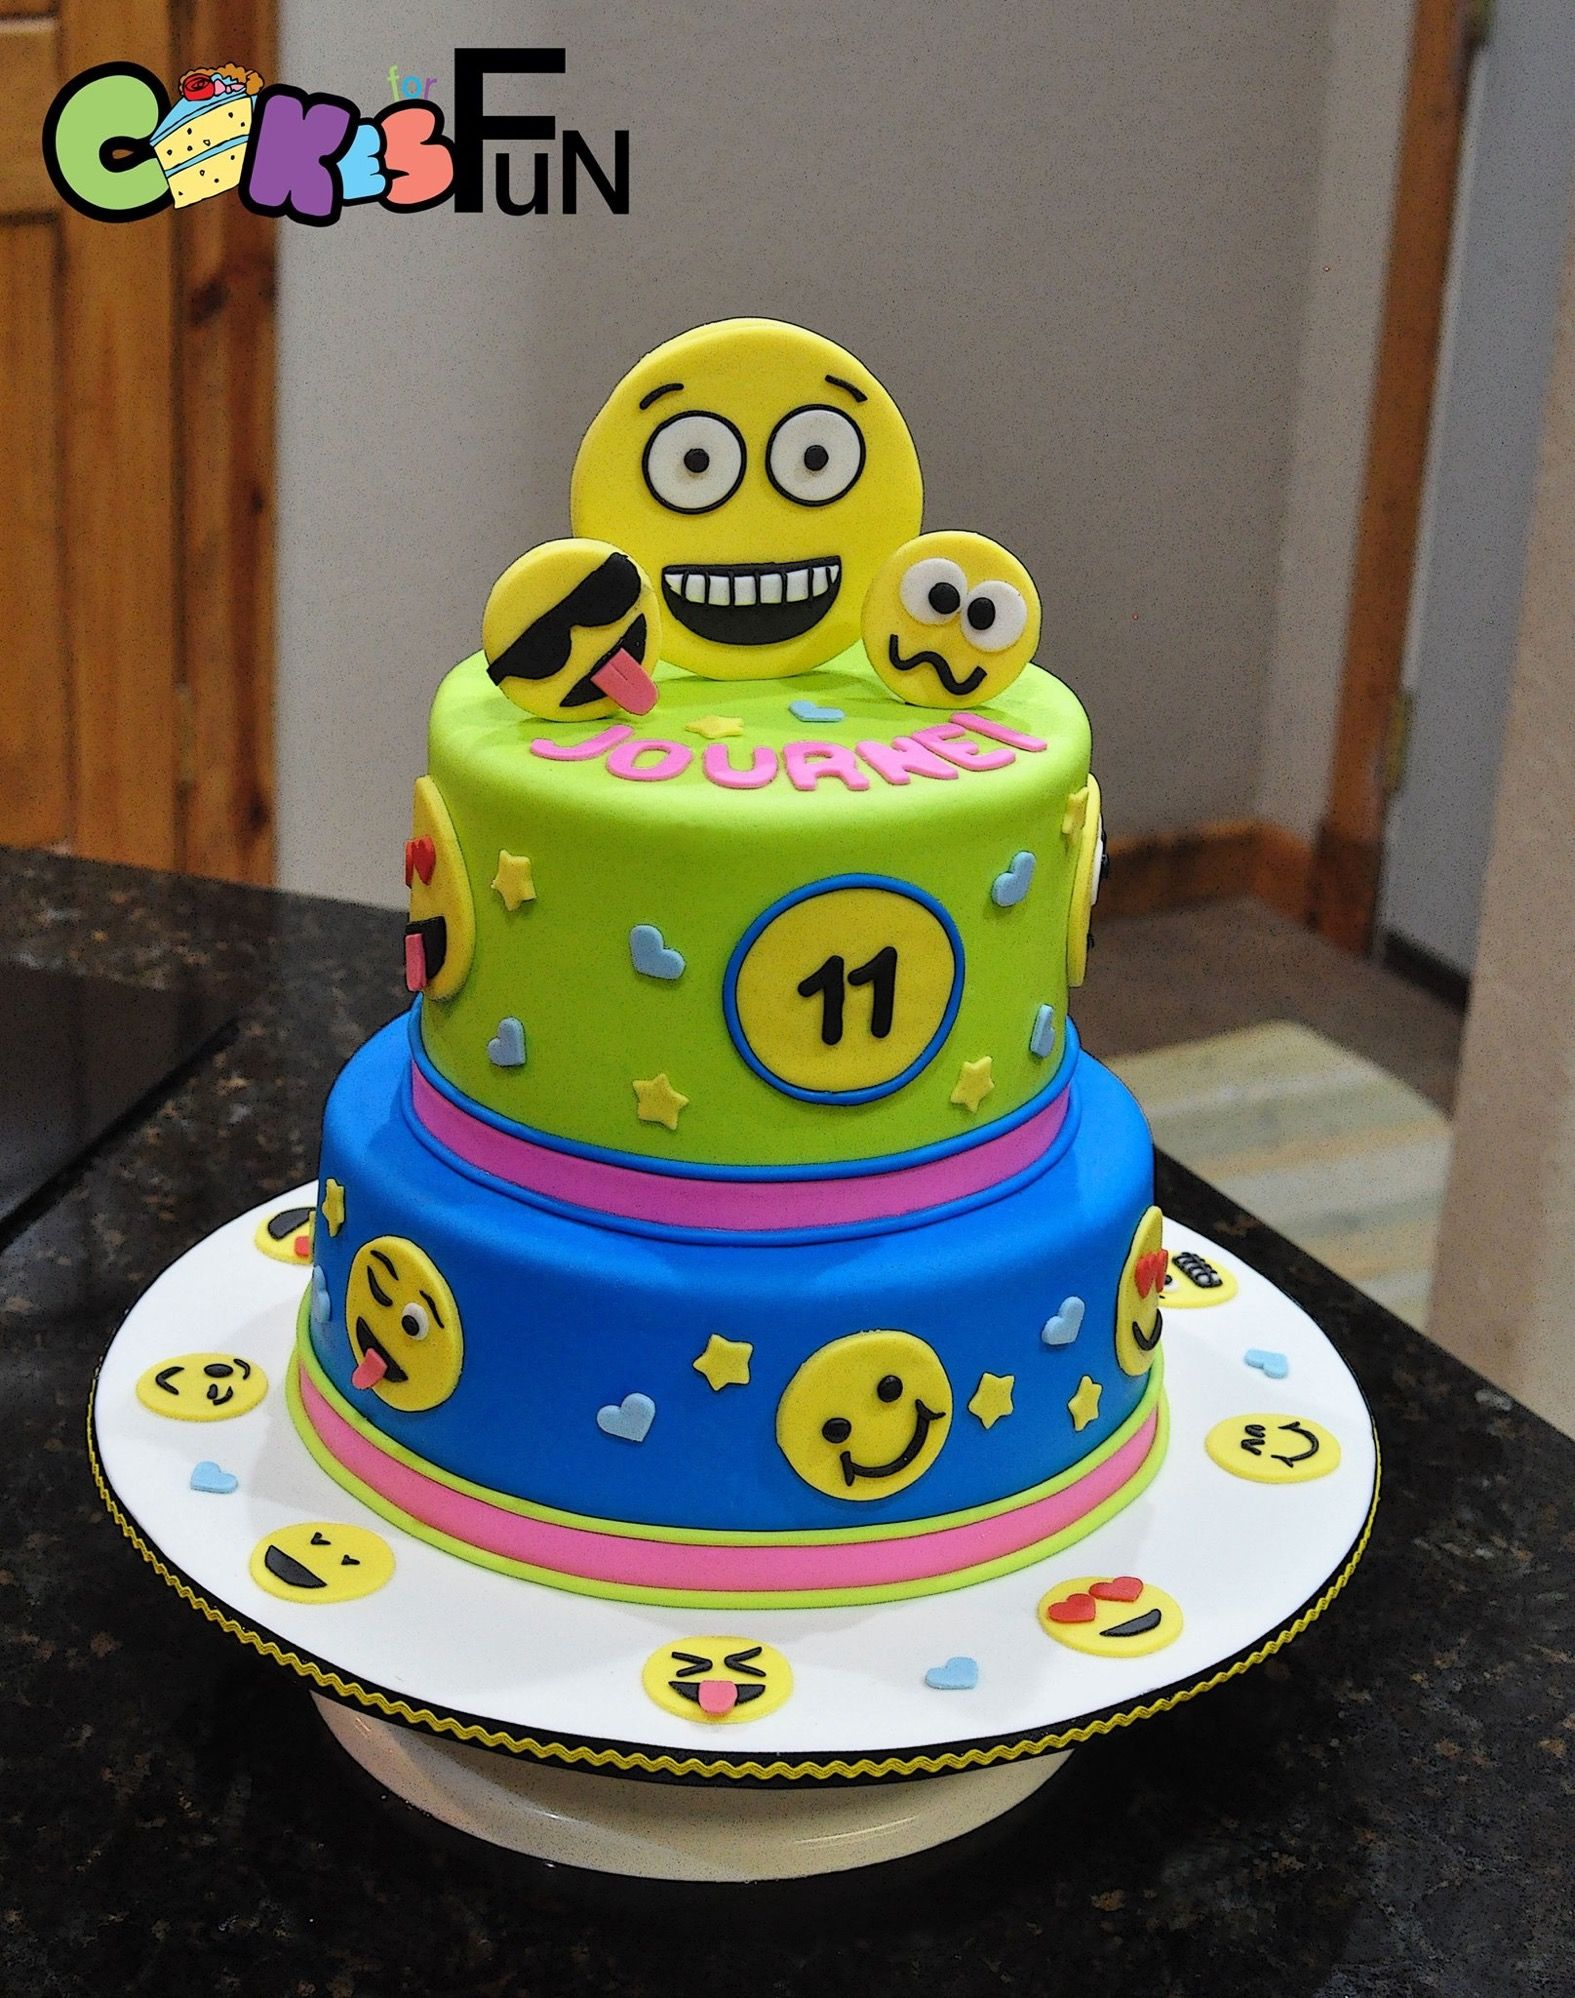 Groovy Emoticon Cake Emojis On 2 Tiered Cake Www Facebook Com Personalised Birthday Cards Epsylily Jamesorg